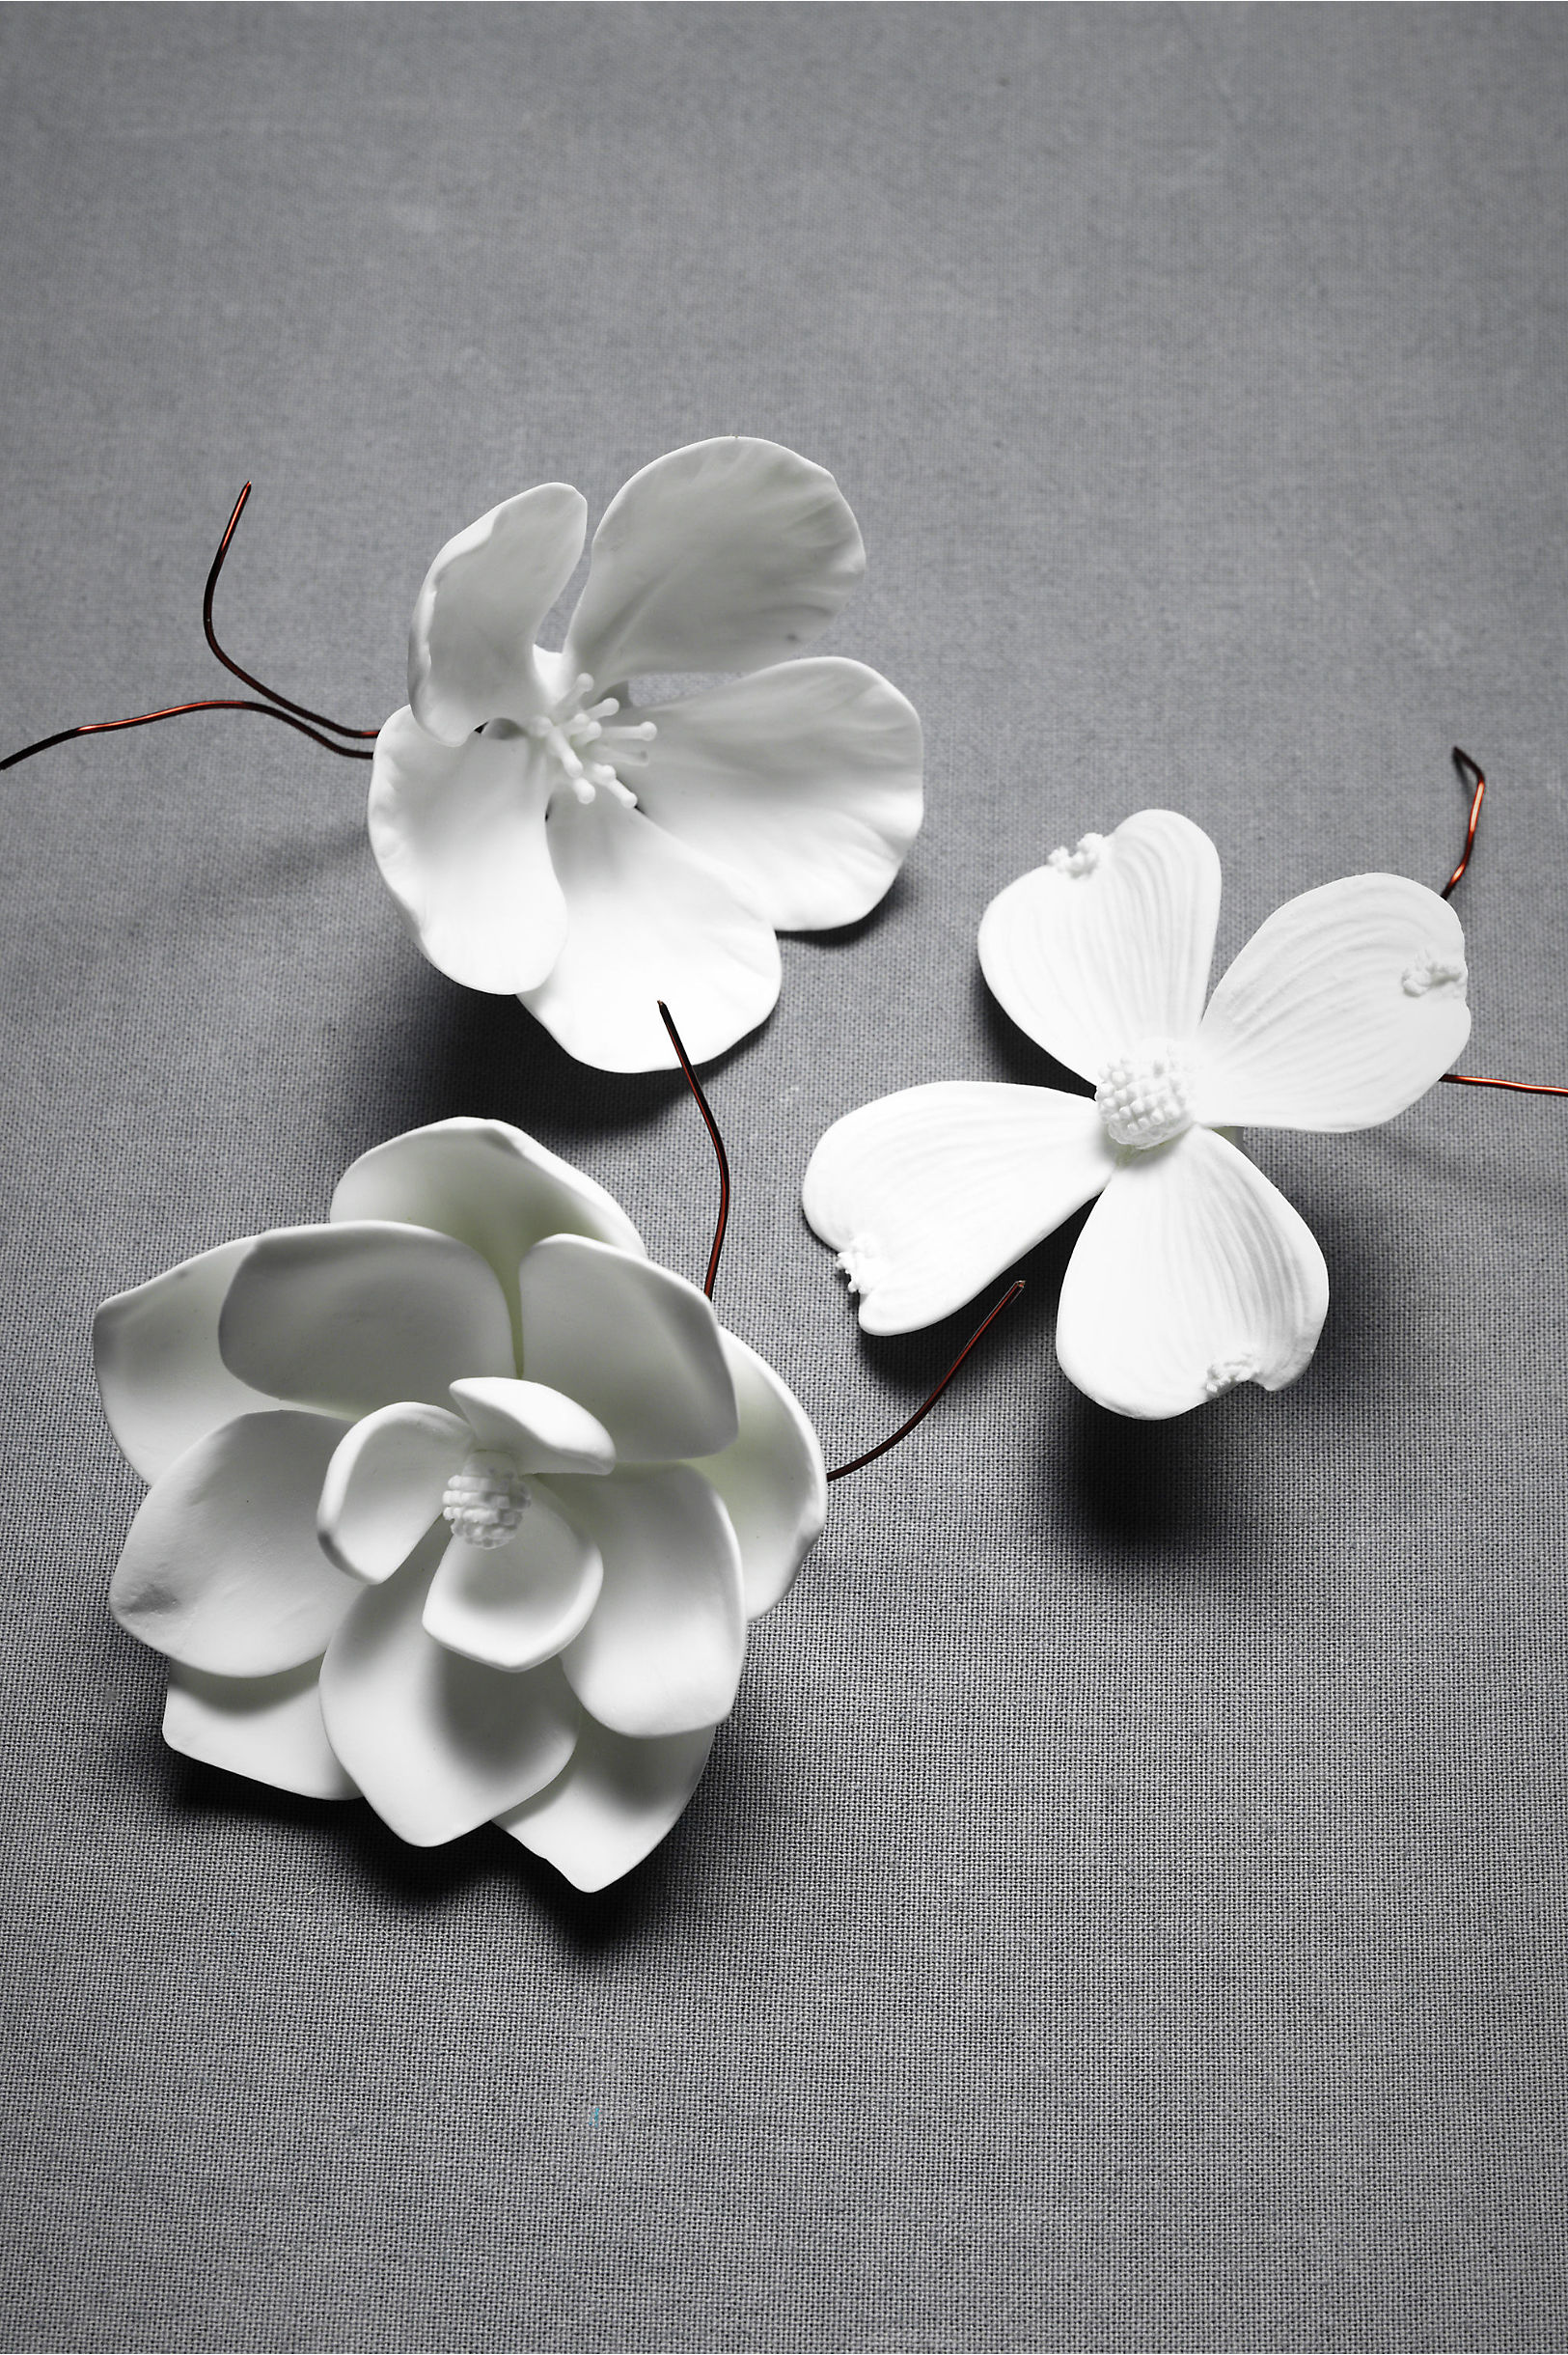 Porcelain bloom in dcor gifts bhldn white porcelain bloom bhldn mightylinksfo